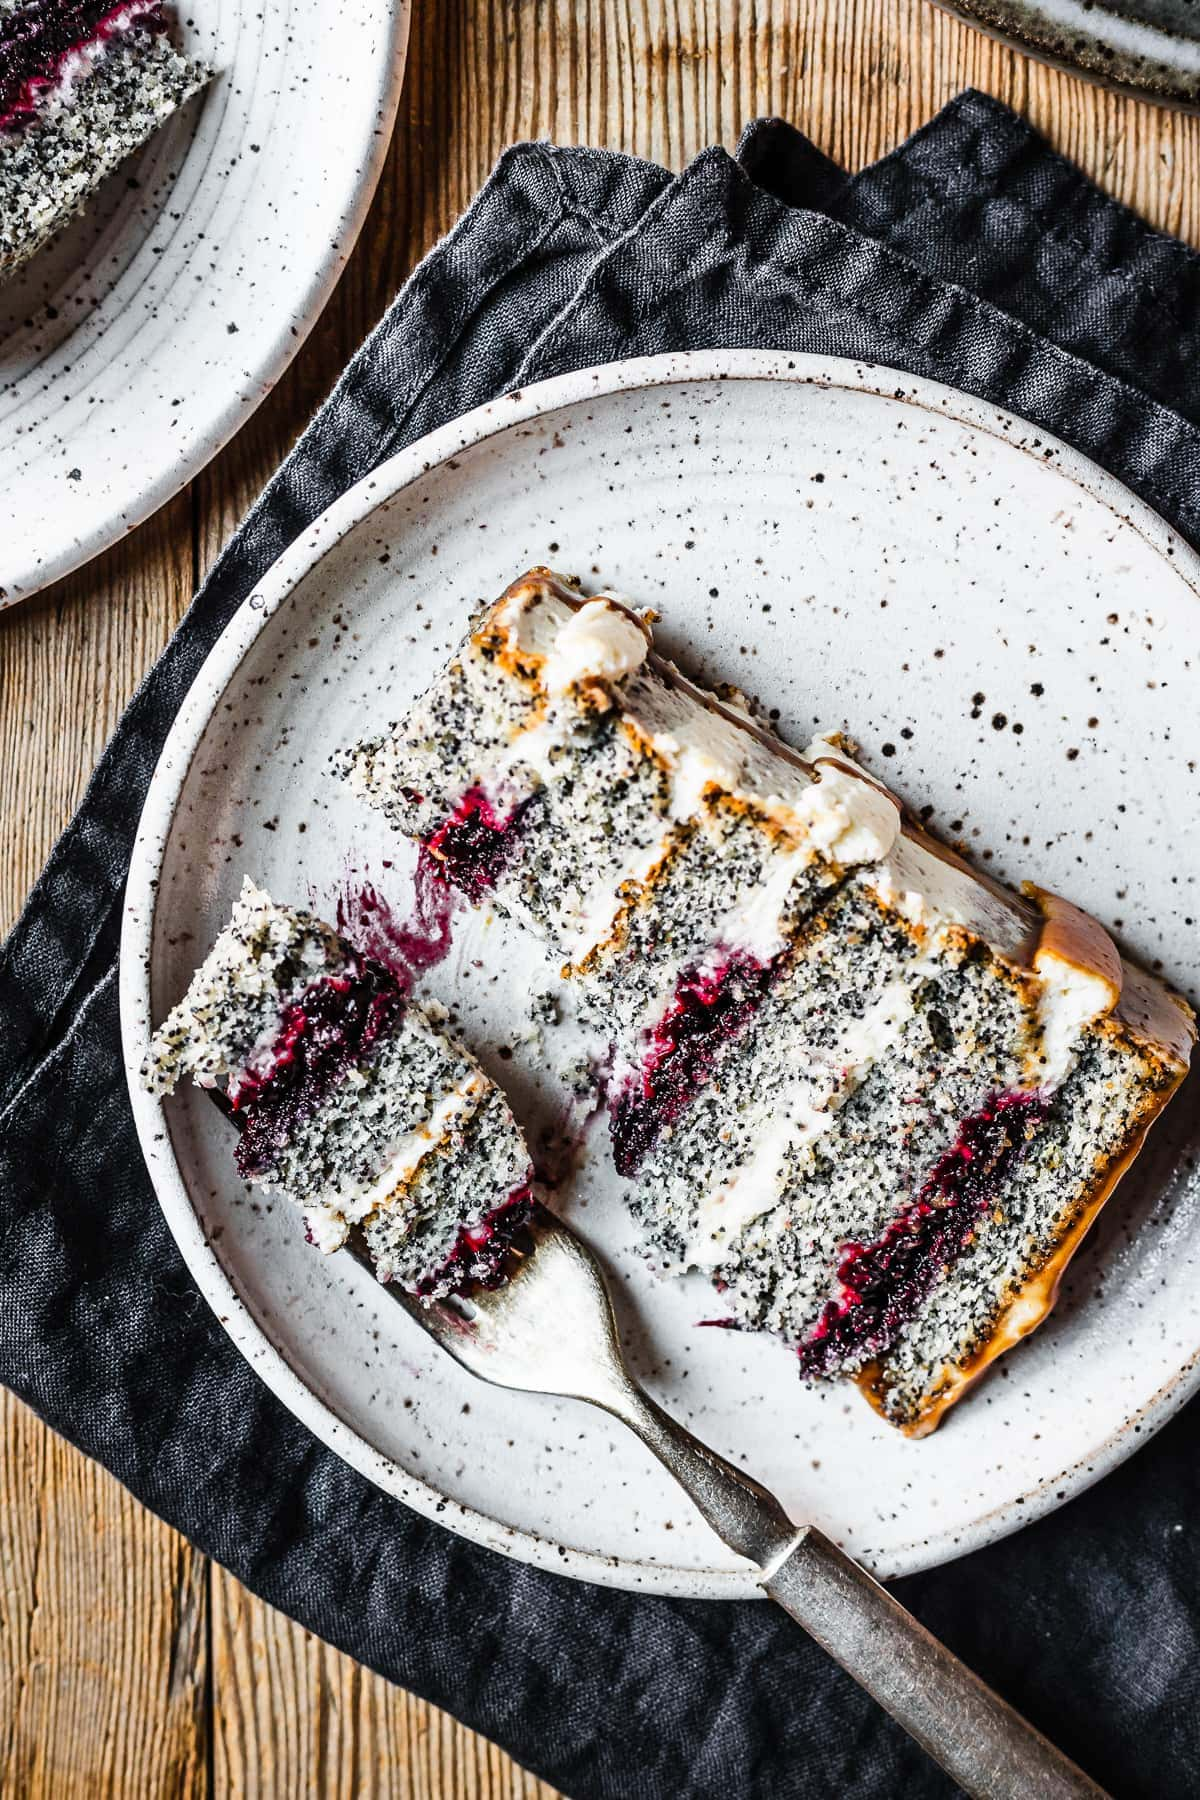 A slice of poppyseed cake with mascarpone frosting and caramel drip, with layers of vibrant purple blackberry basil jam. The slice sits on a white speckled ceramic plate with a navy blue linen napkin folded underneath, on a rustic wooden table.